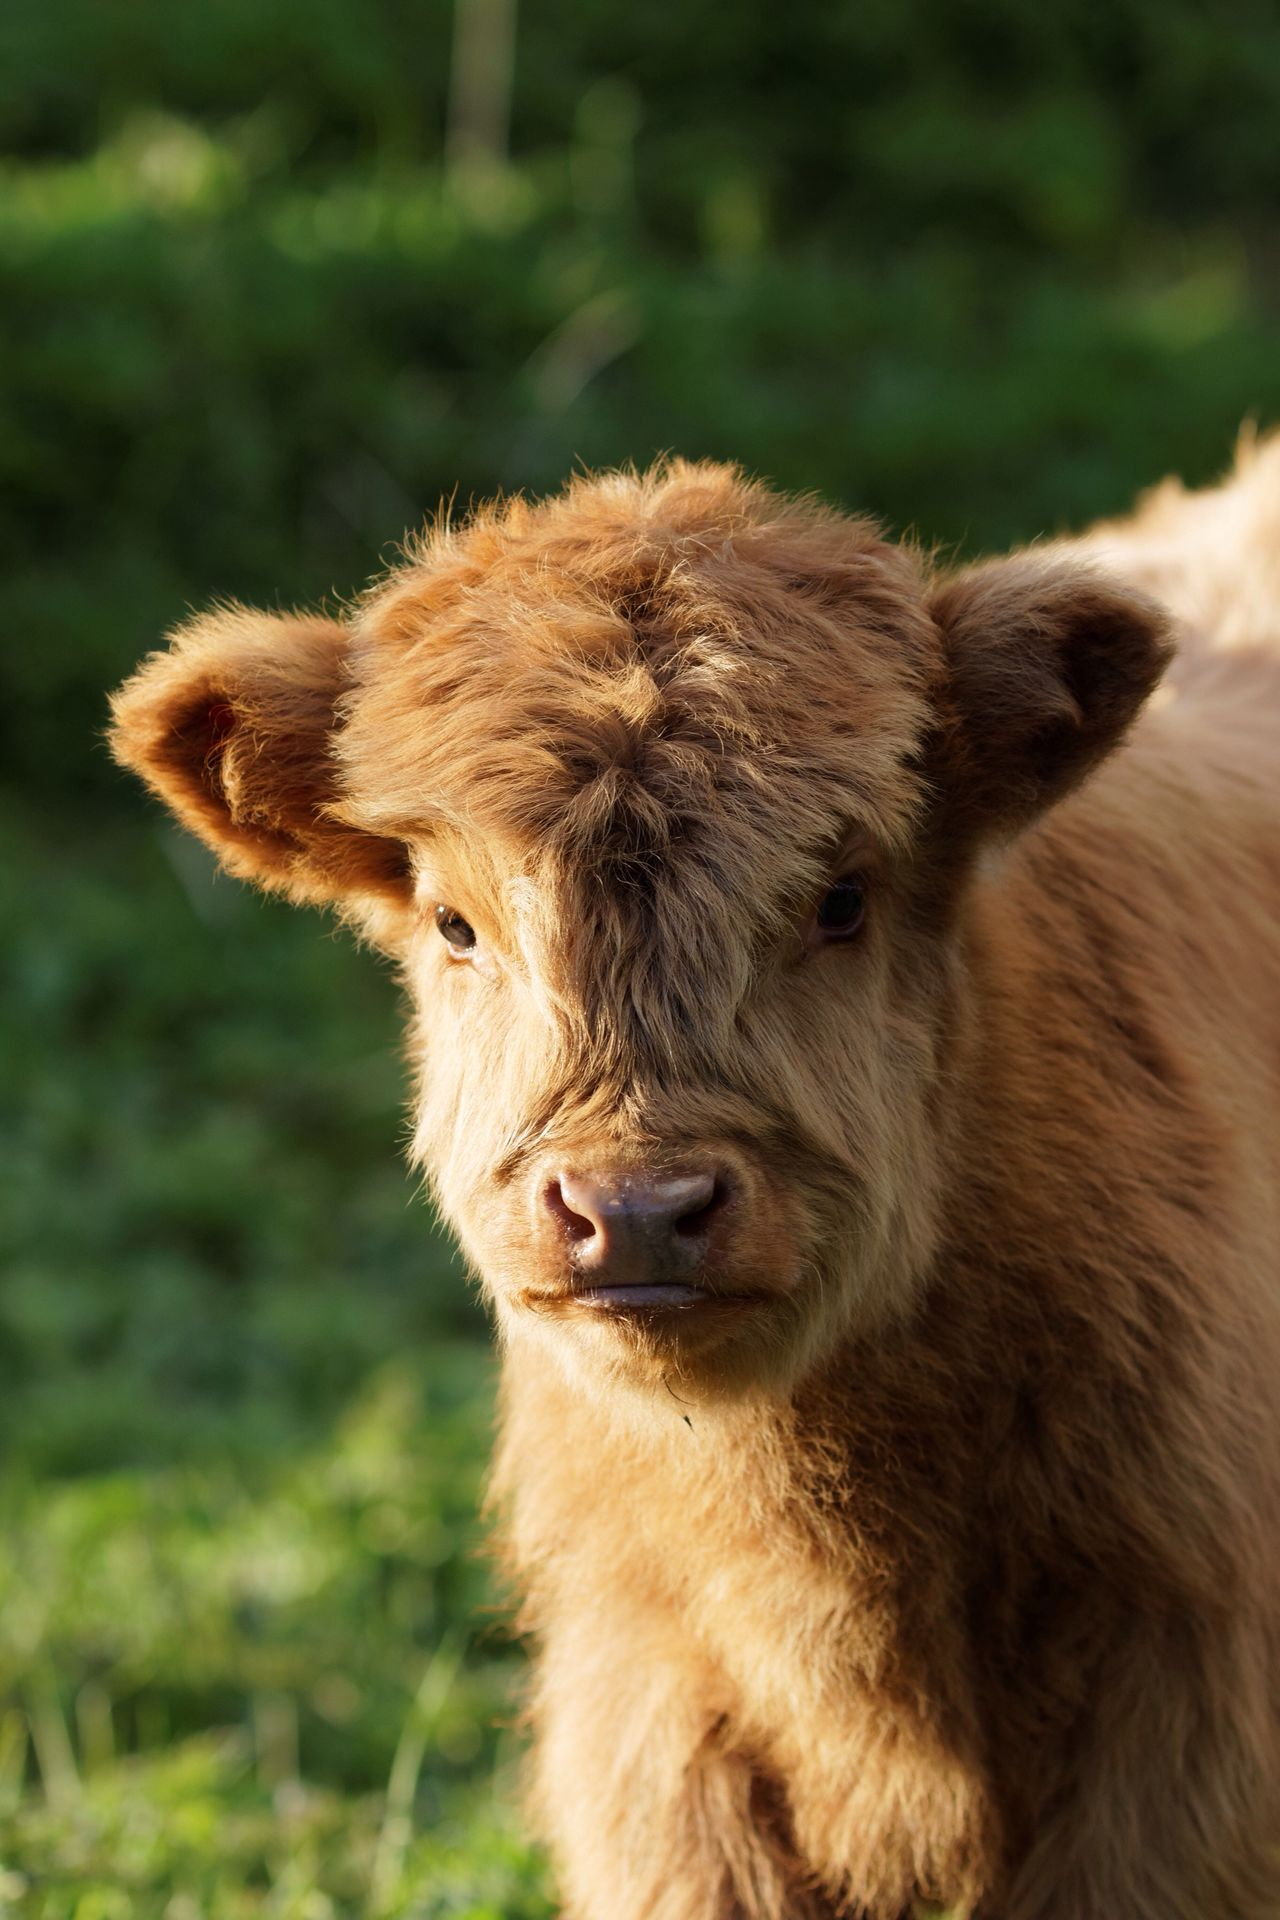 Highland Cattle Newly Born Domestic Animals Animal Themes Mammal Livestock One Animal No People Field Focus On Foreground Day Young Animal Portrait Outdoors Nature Close-up Grass Highland Cattle